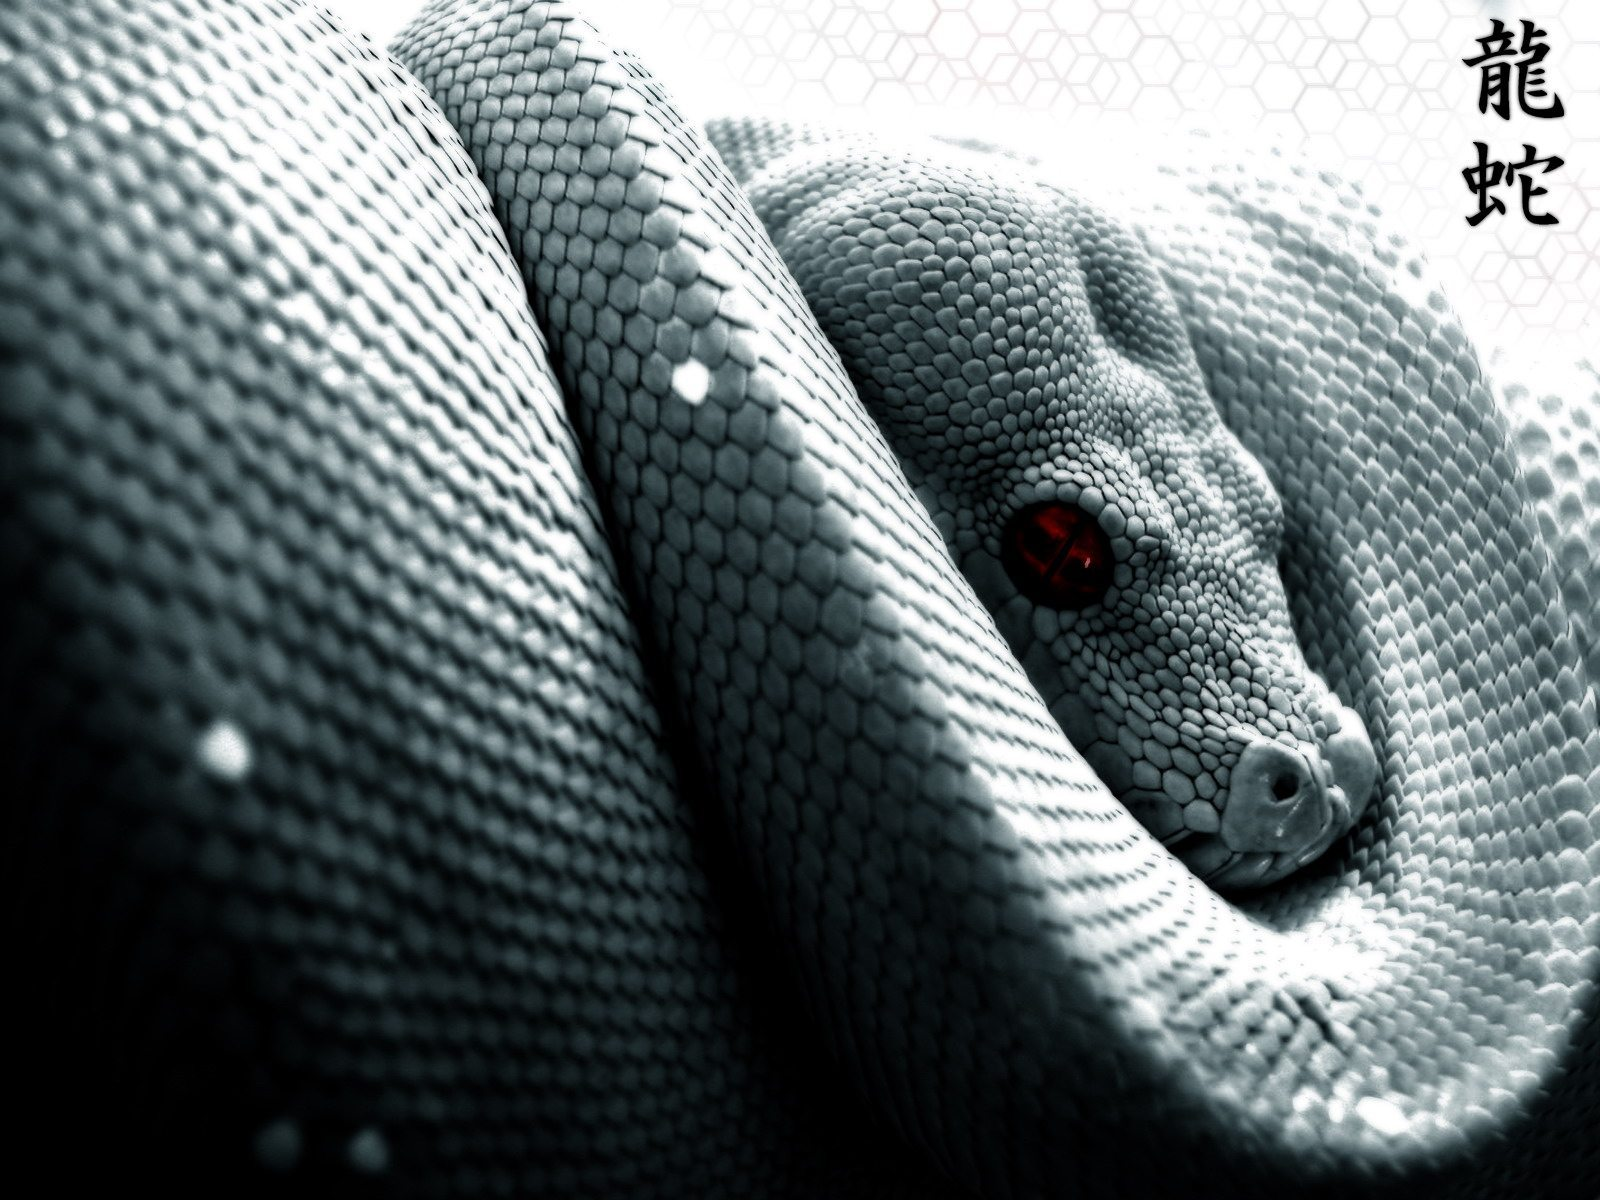 Snakes_44